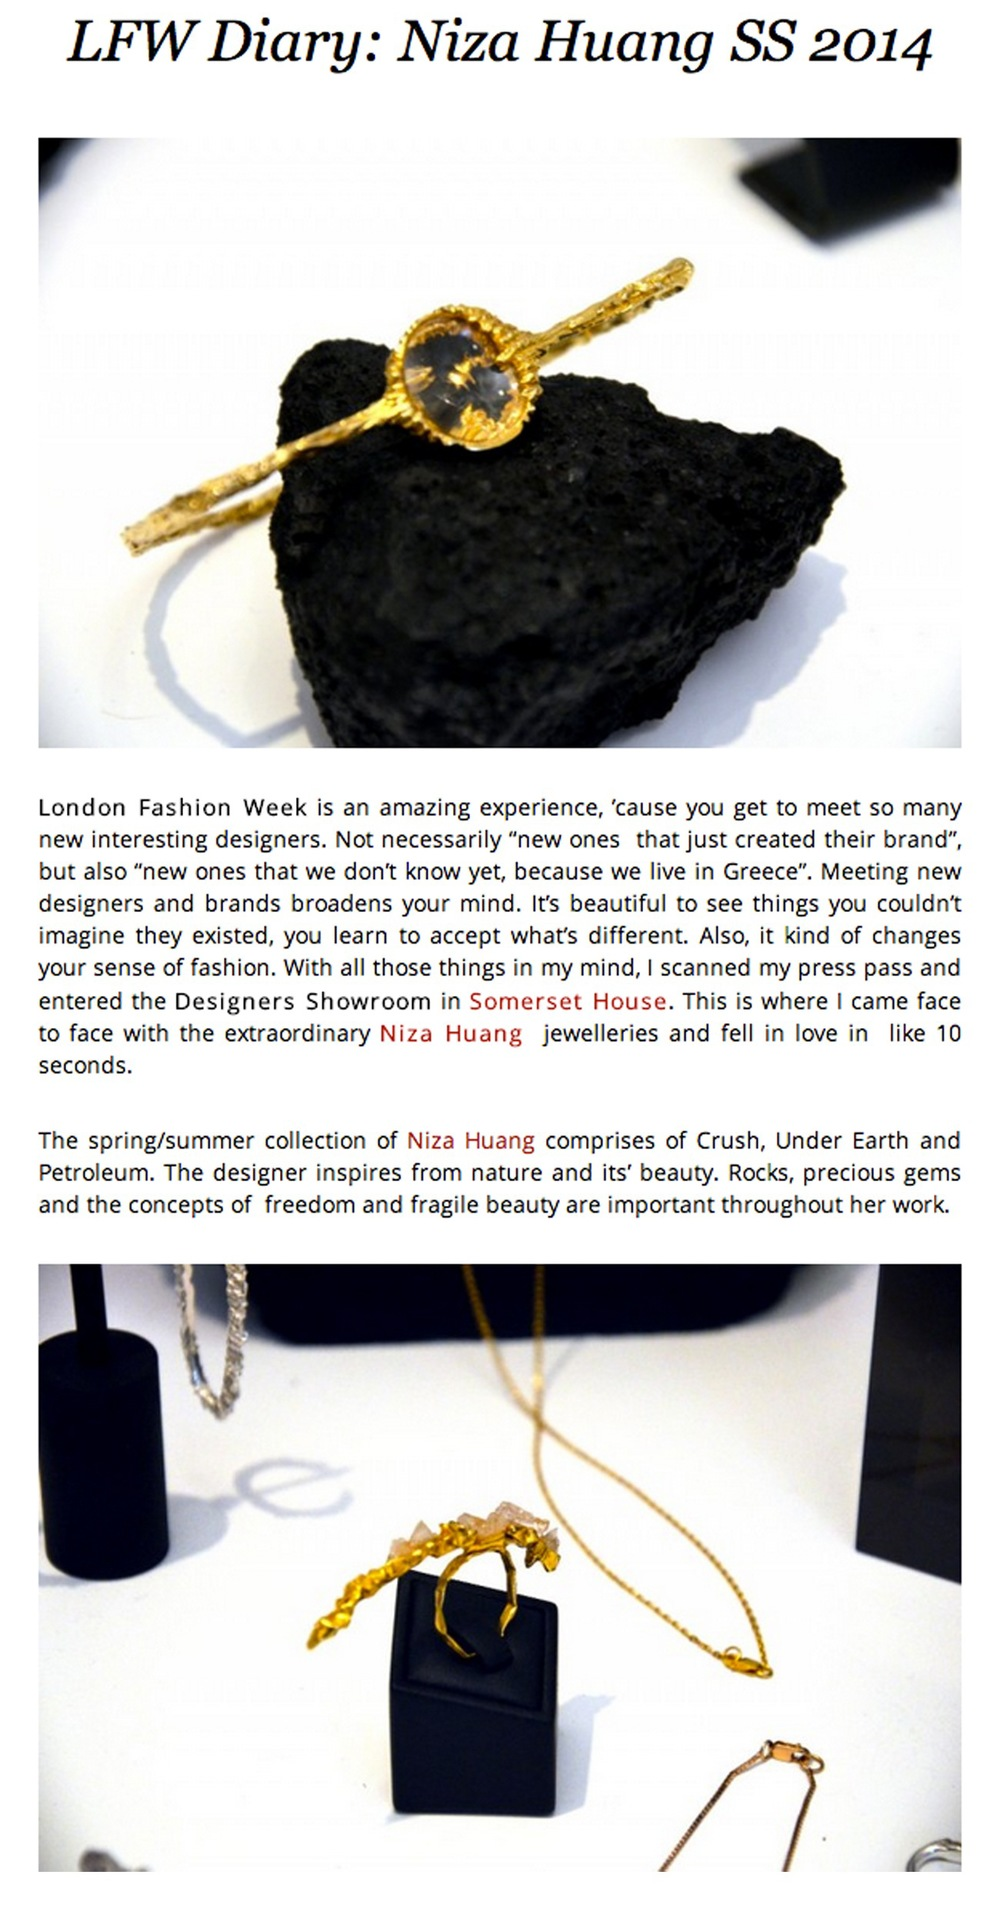 Featured at Smells Like Fashion  http://  www.smellslikefashion.com/  en/2013/09/  lfw-diary-niza-huang-ss-201  4/